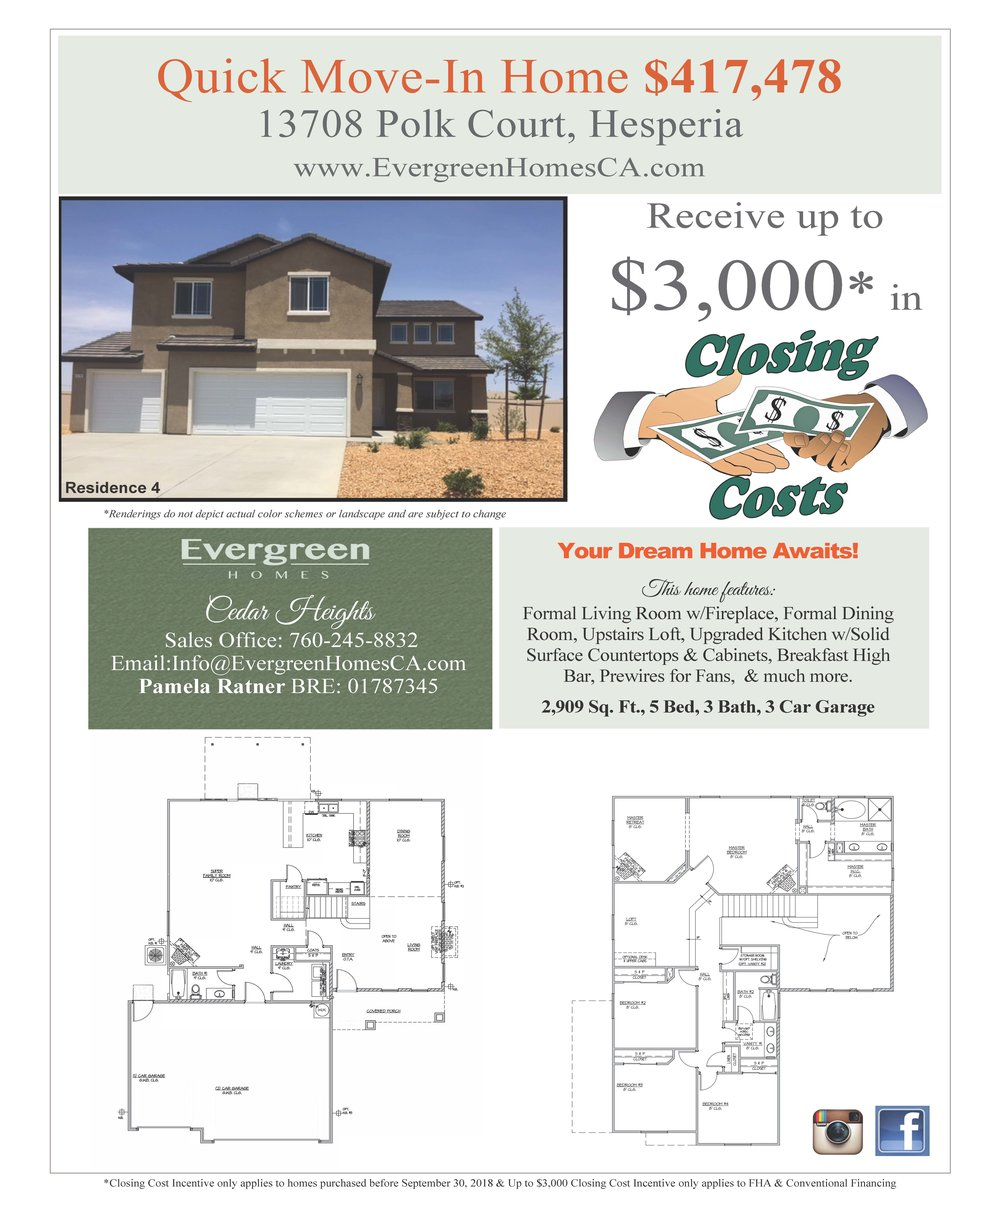 Flyer__Lot 180__Cedar Heights.9.4.18.jpg